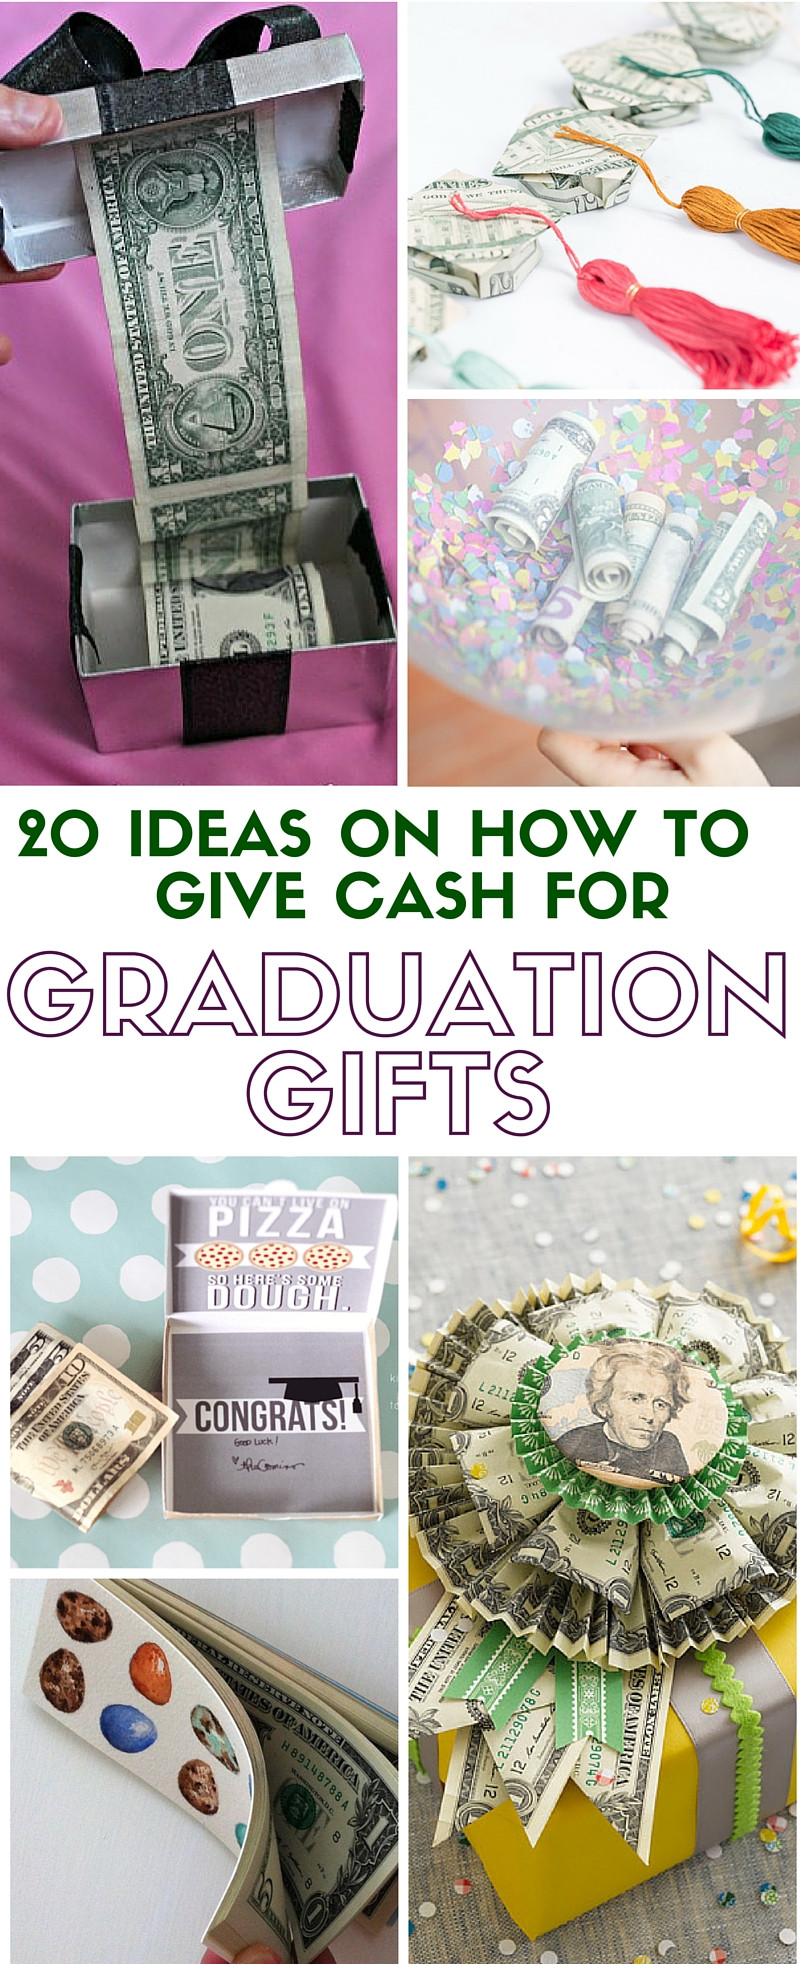 Top Graduation Gift Ideas For Senior Graduates  31 Back To School Teacher Gift Ideas The Crafty Blog Stalker